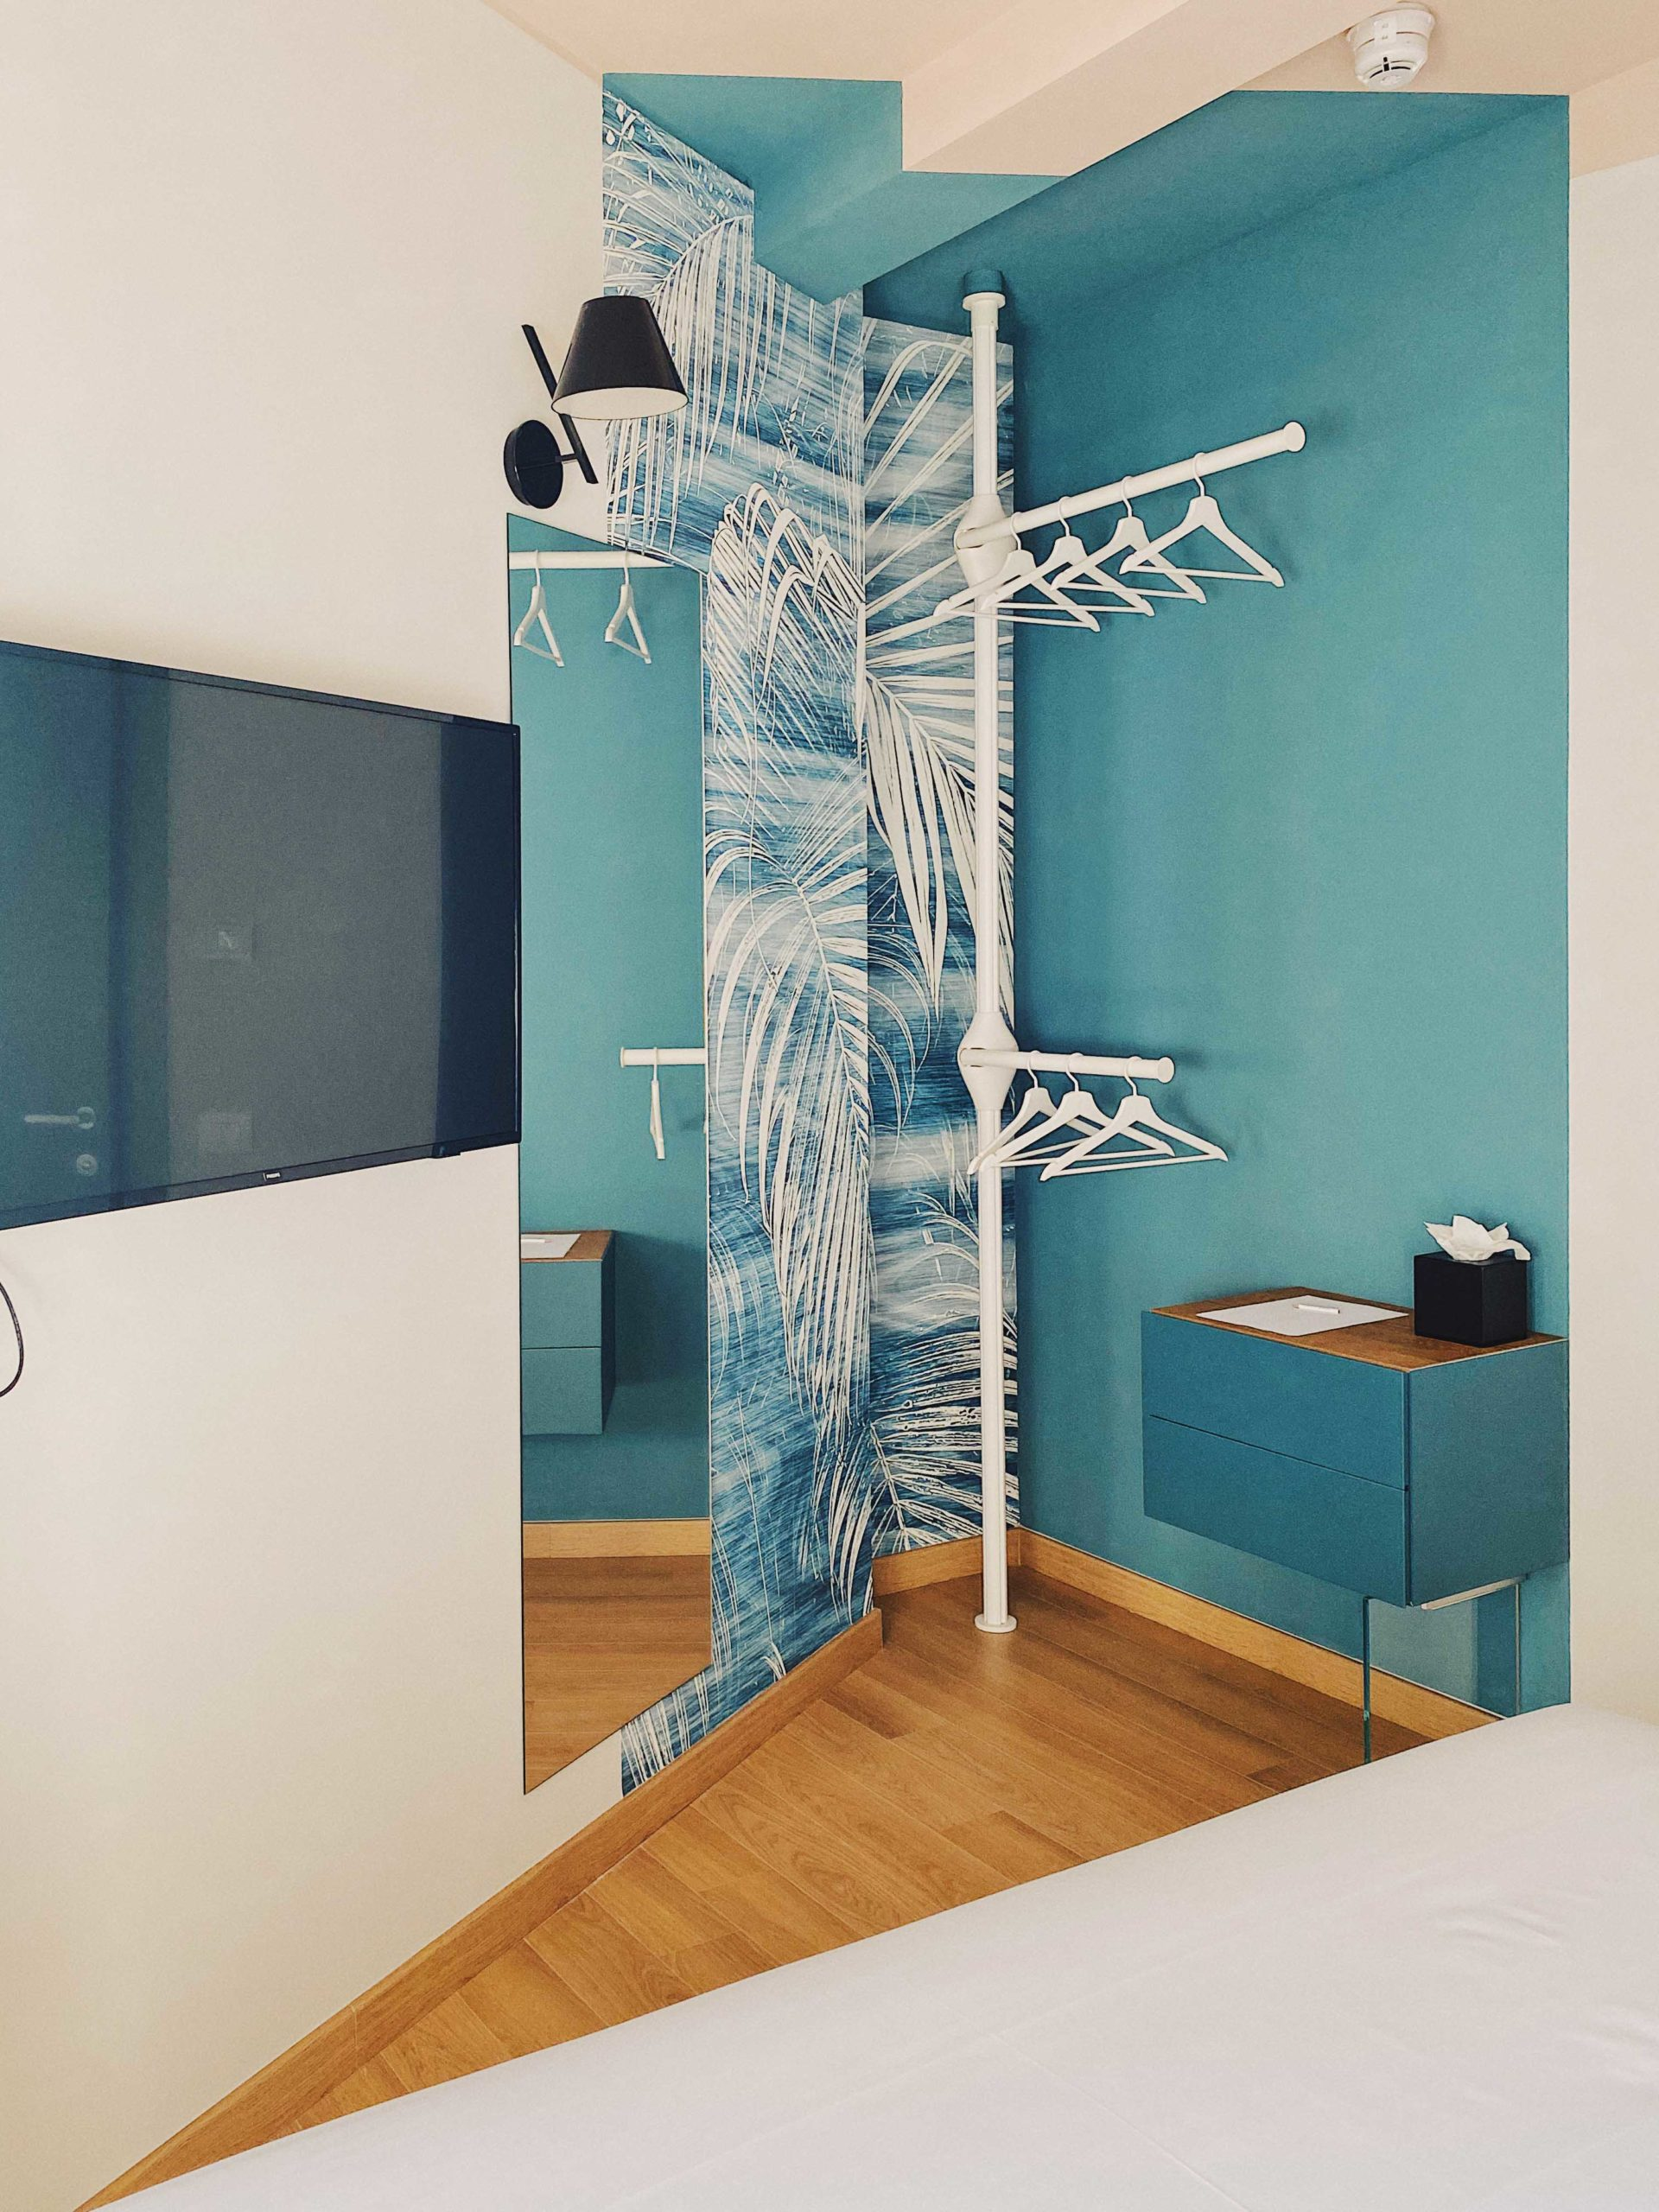 Where to find an affordable design hotel in Milan: 21 Wol Milano Centro.